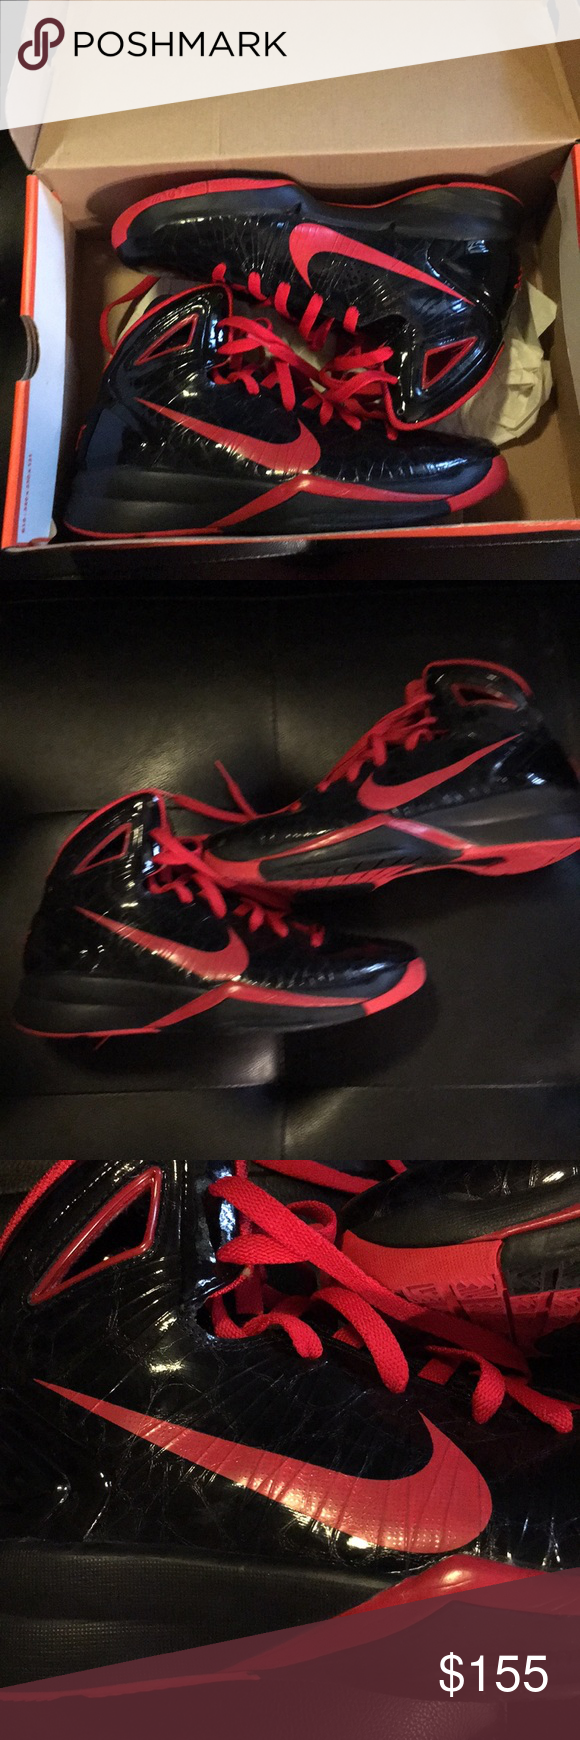 d6219321c090 VINTAGE NIKE HYPERDUNK 2010 BASKETBALL RARE FIND 9 VINTAGE NIKE HYPERDUNK  2010 BASKETBALL RARE FIND size 9 MINT CONDITION. Nike Shoes Sneakers